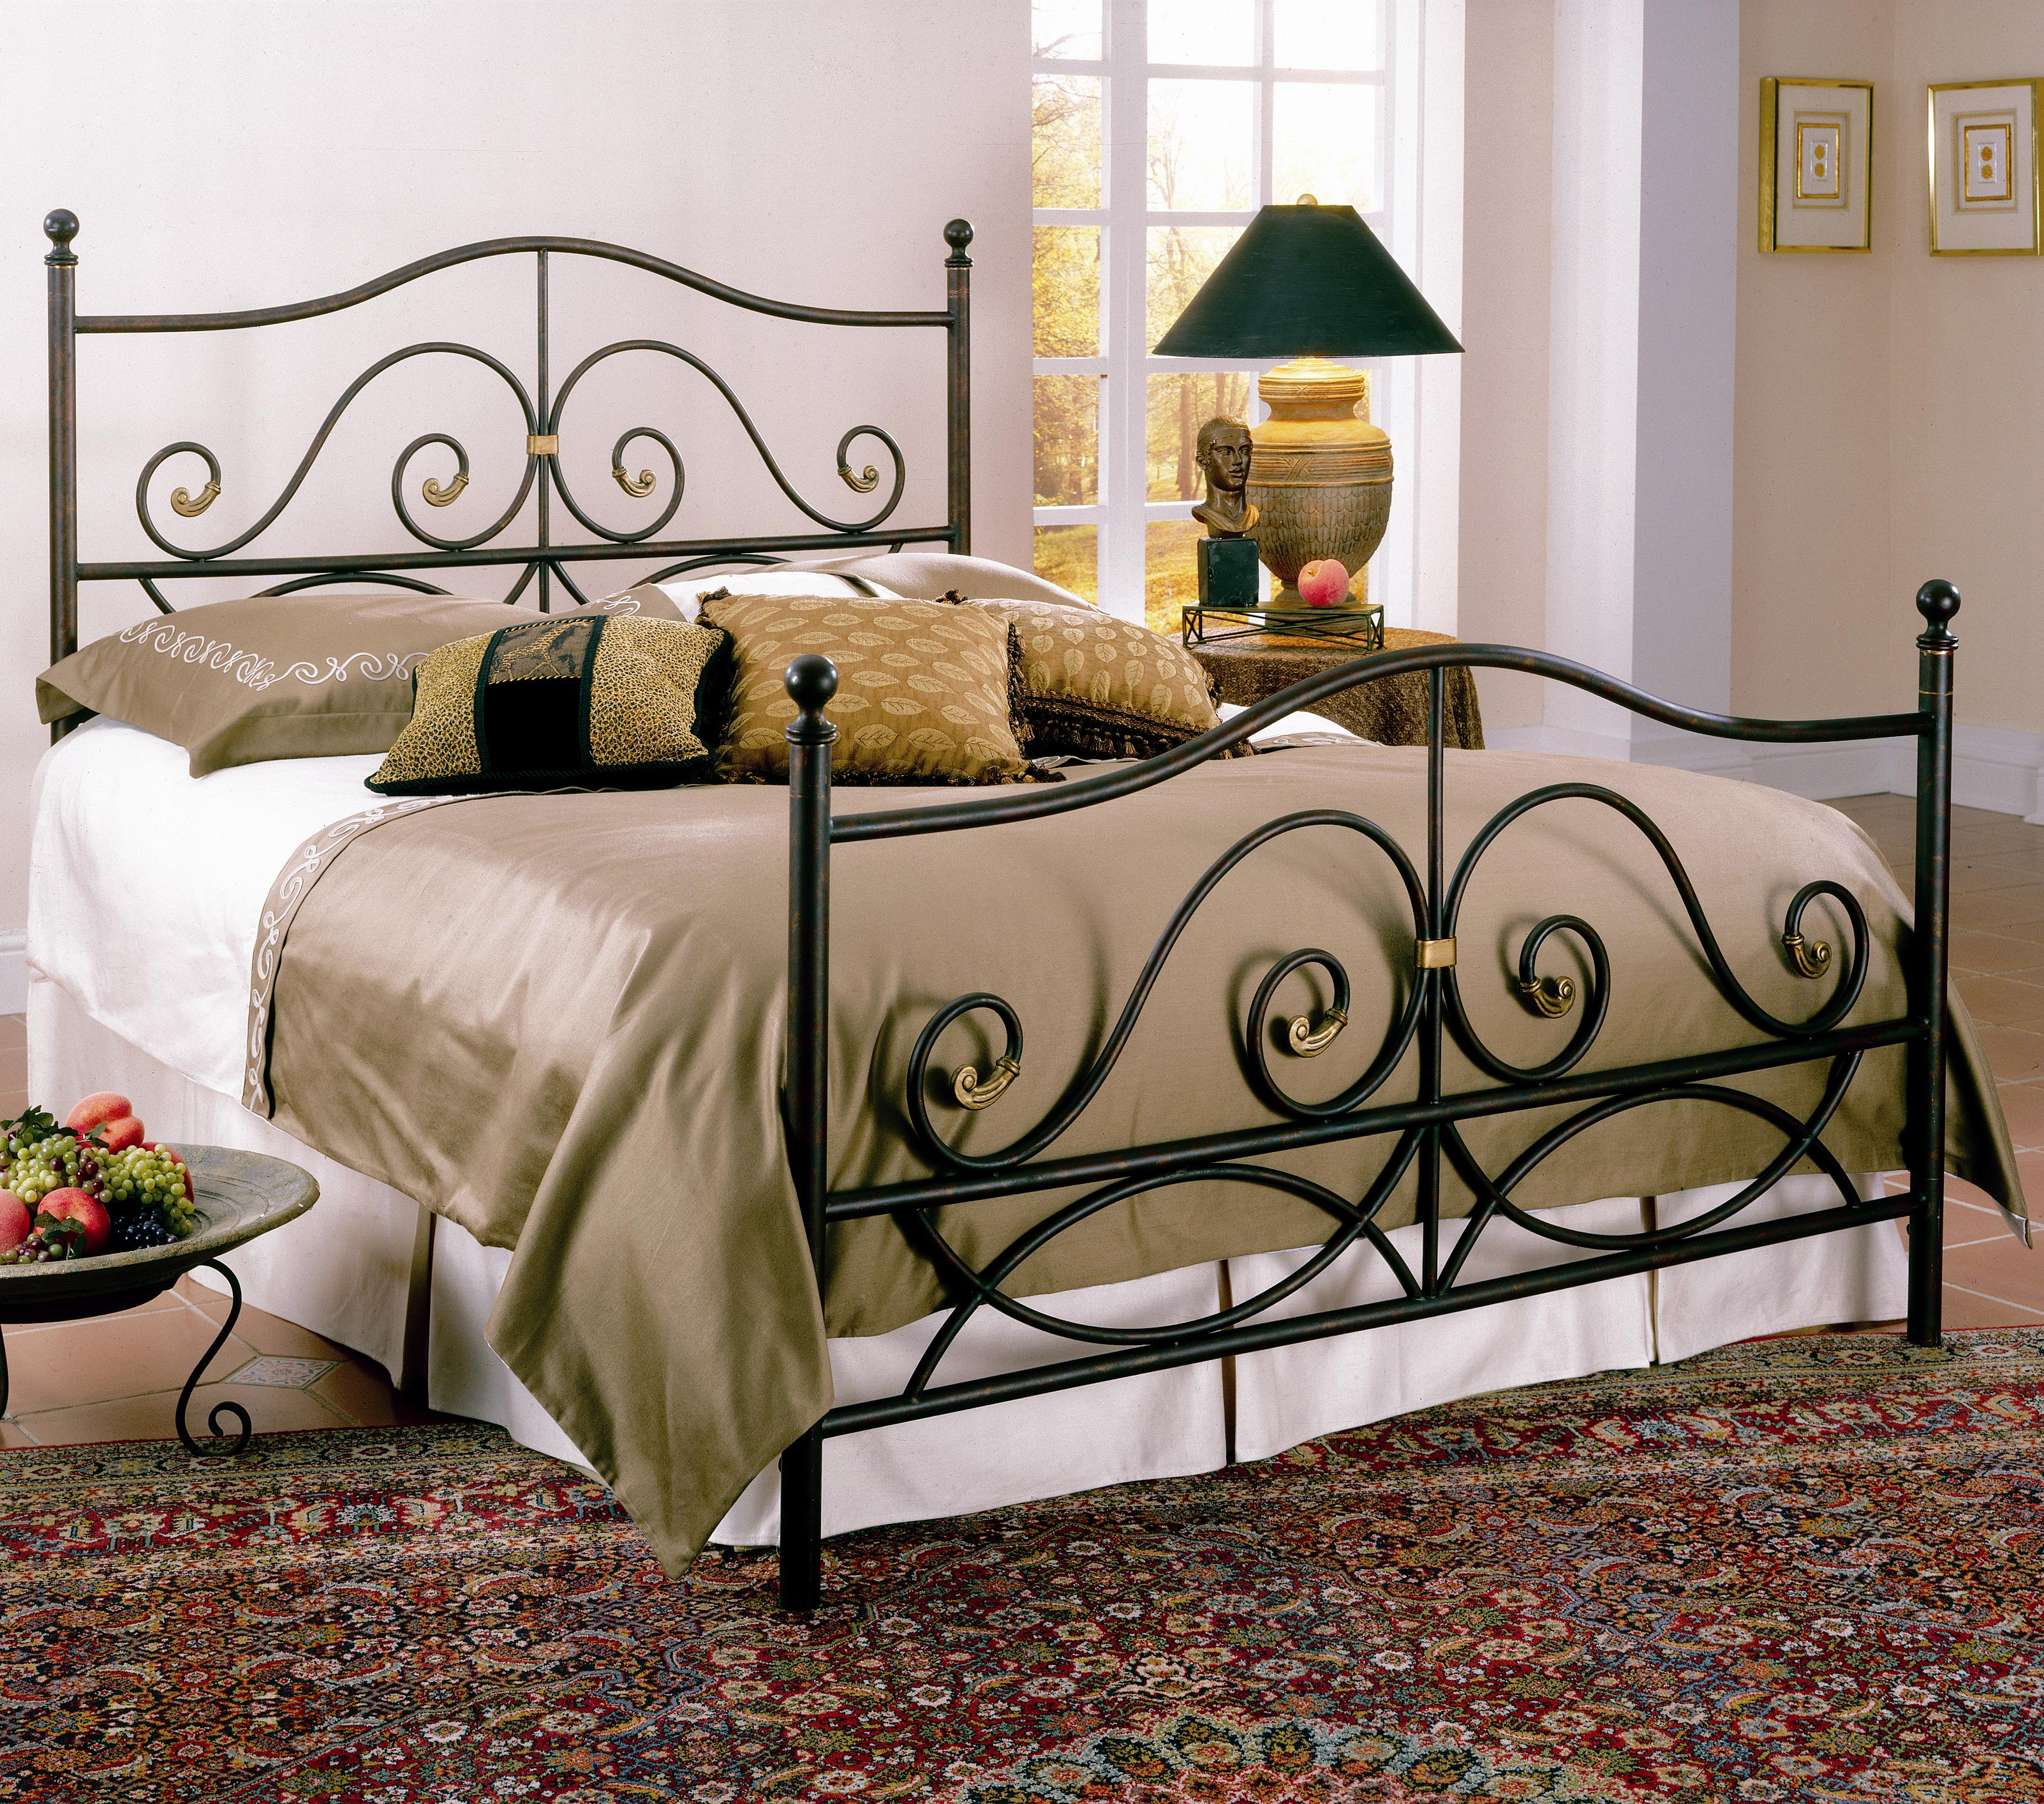 Largo Bedroom Furniture Full Camden Bed By Largo Wolf And Gardiner Wolf Furniture